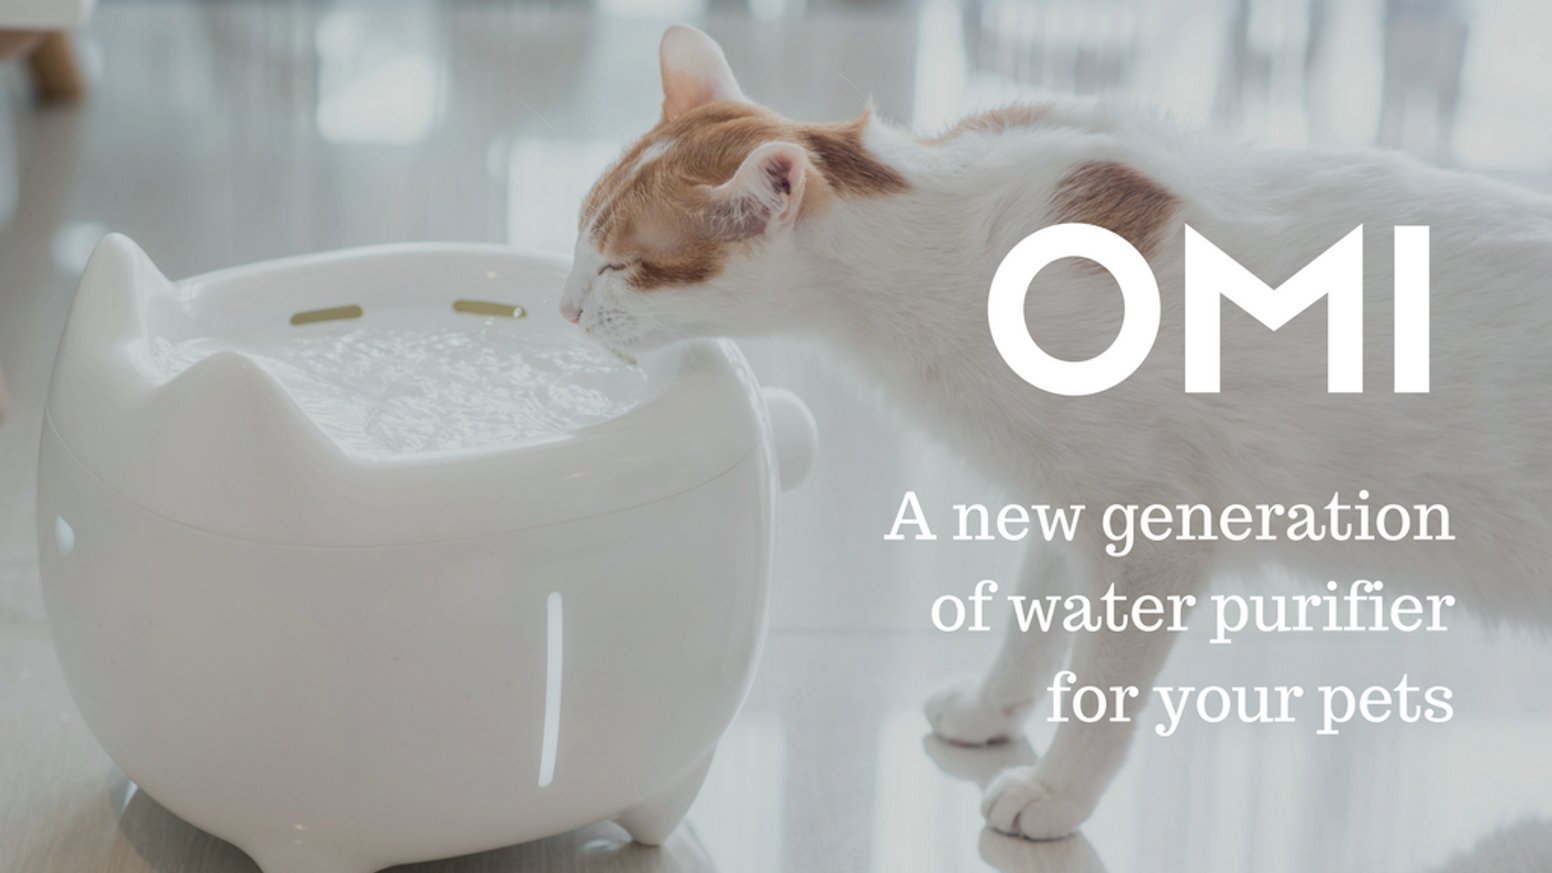 No more dirty and boring water. OMI is equipped with the smartest technology to ensure the best quality water for your pets.